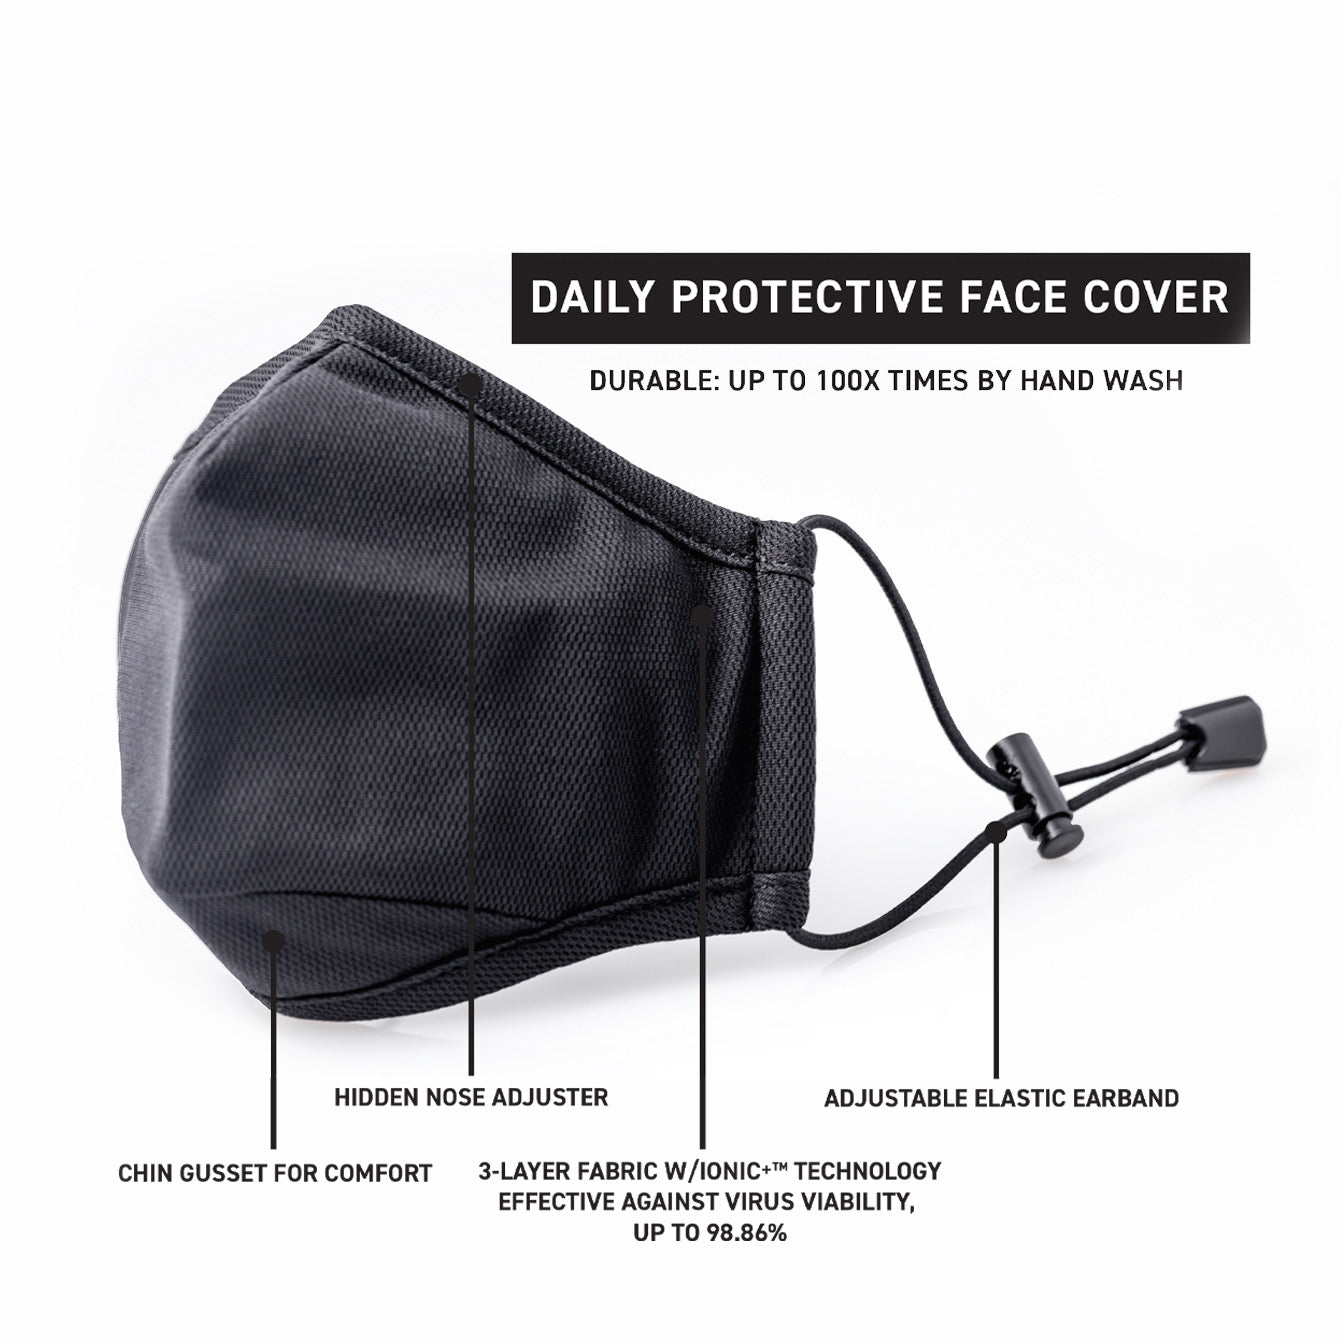 Face Mask for Protection. Effective Face Cover for Men, Breathable, Adjustable, Soft, Washable, Reusable, Comfortable for Workouts and other Exercises, with Odor Control